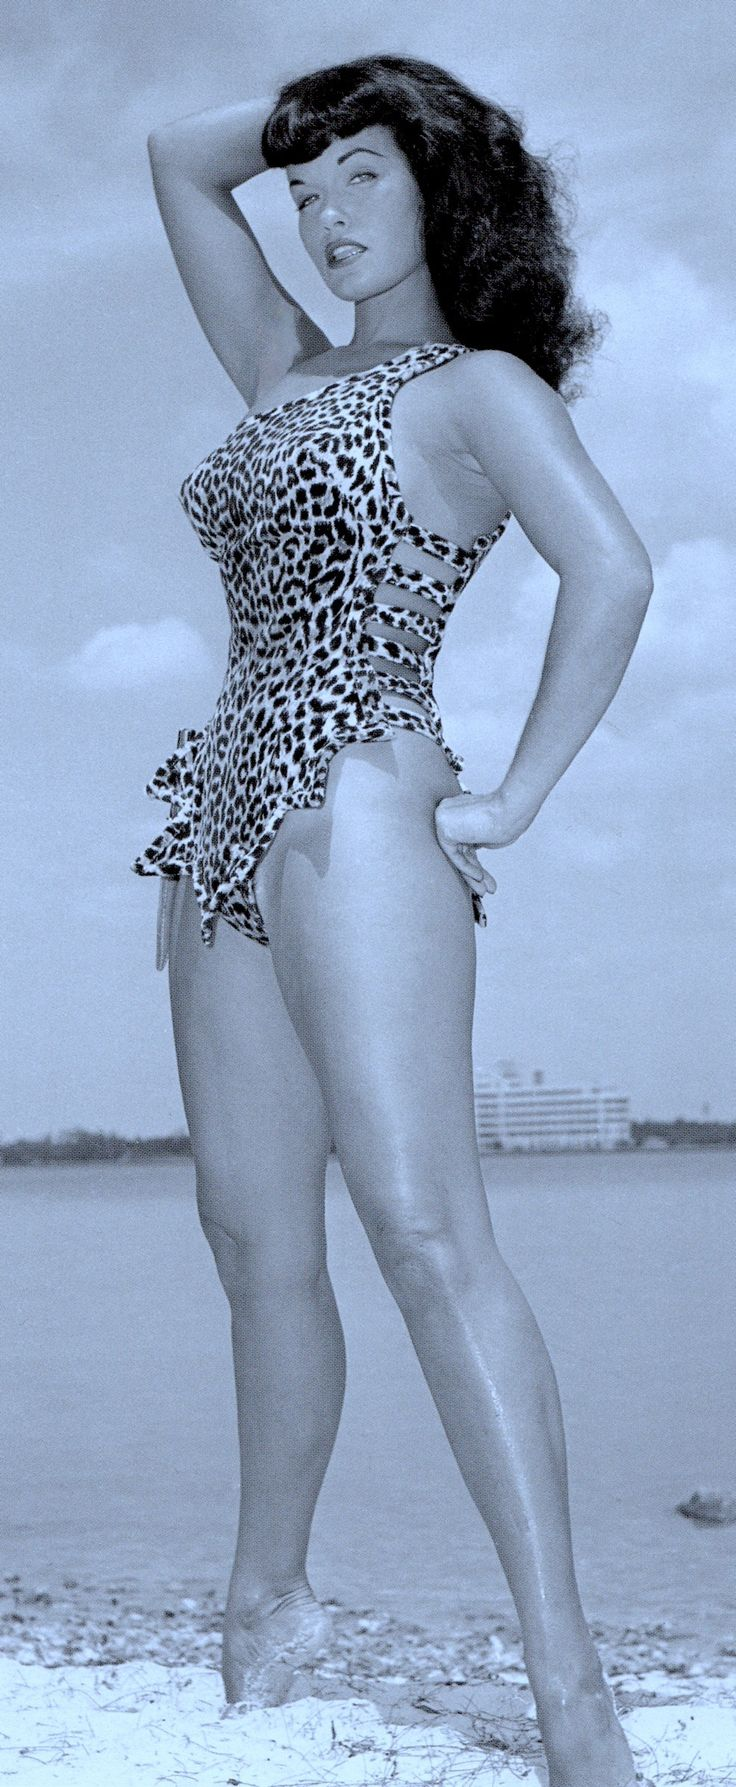 Bettie Page In Leopard Print Florida 1954 By Bunny Yeager